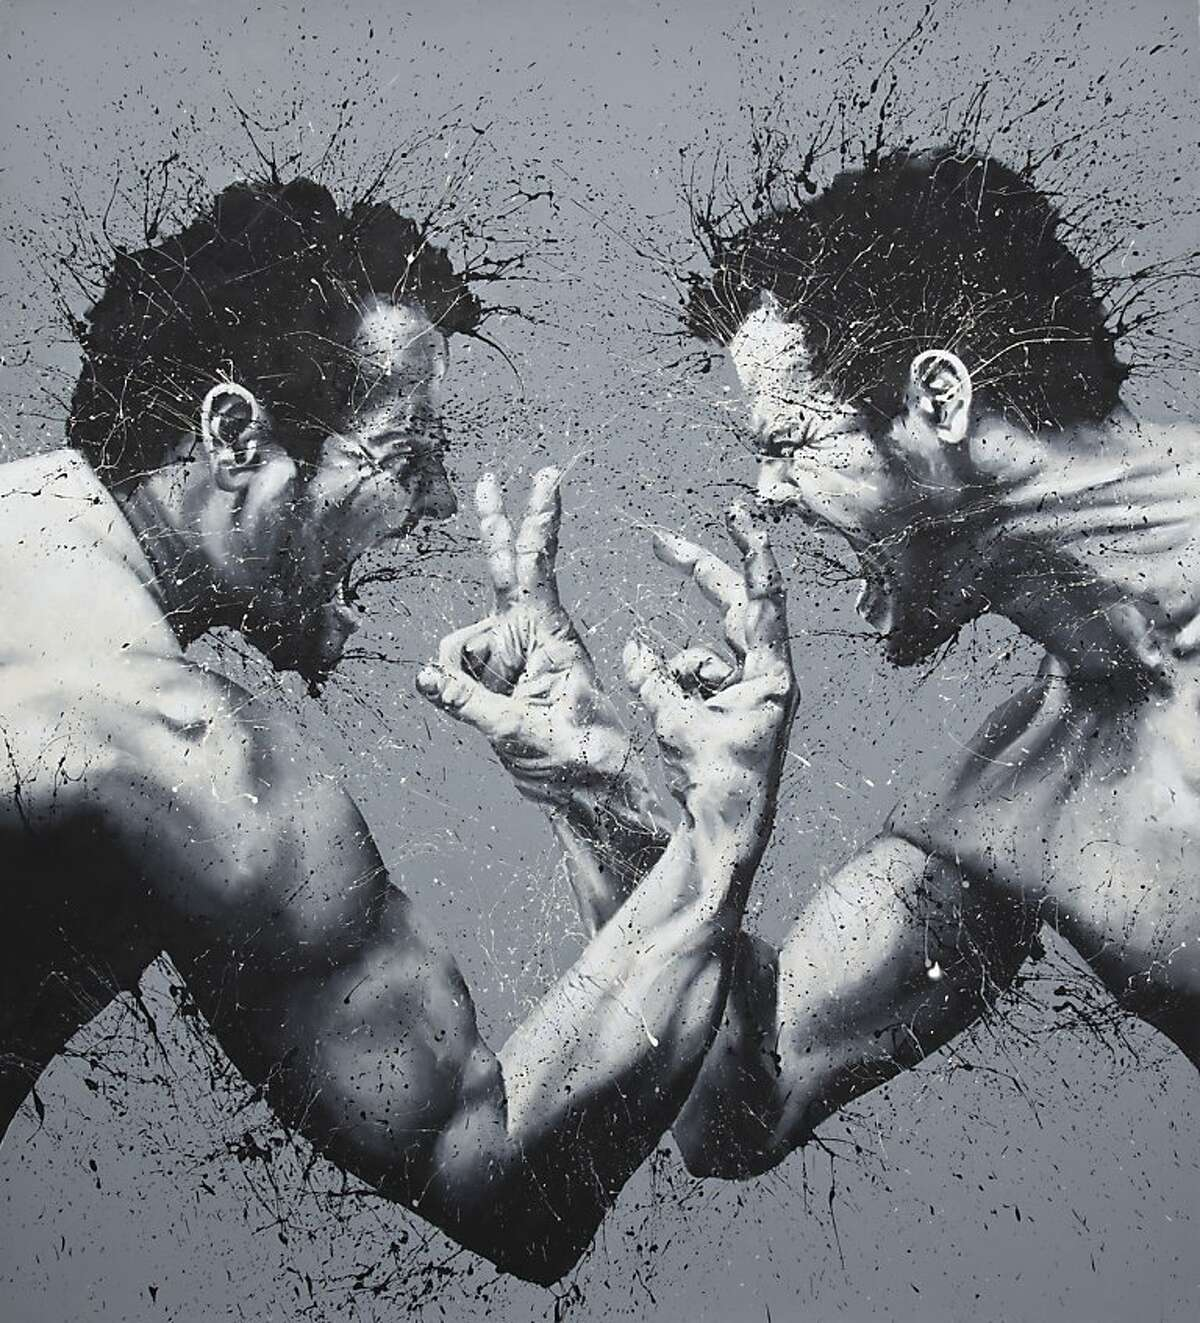 Guerra e Pace (War and Peace) by Paolo Troilo. The Italian finger painting artist Paolo Troilo's art will be having his first US exhibit at Coup d'Etat gallery, thanks to a lucky discovery by GAP Creative Director Stephen Brady.